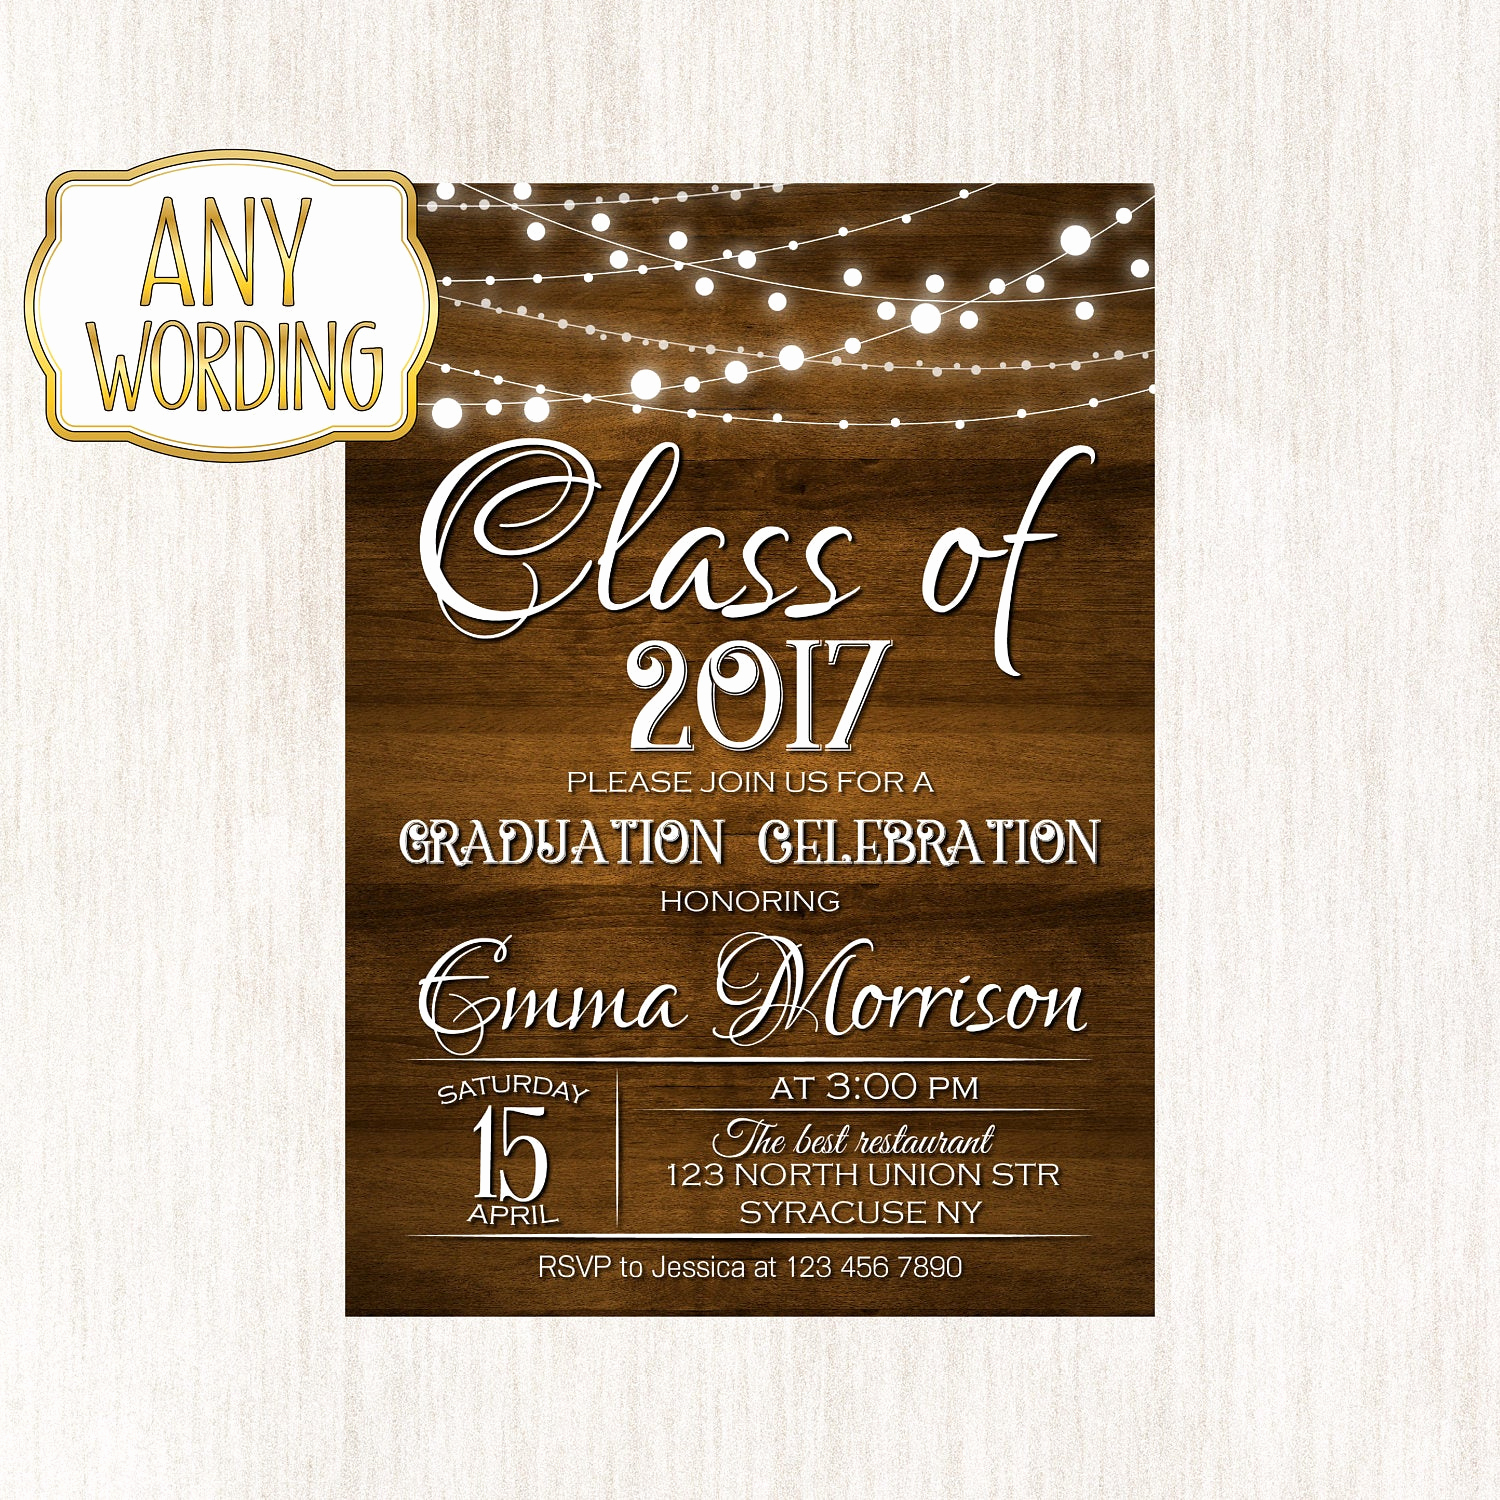 College Graduation Invitation Wording New Graduation Celebration Invitation High School Graduation